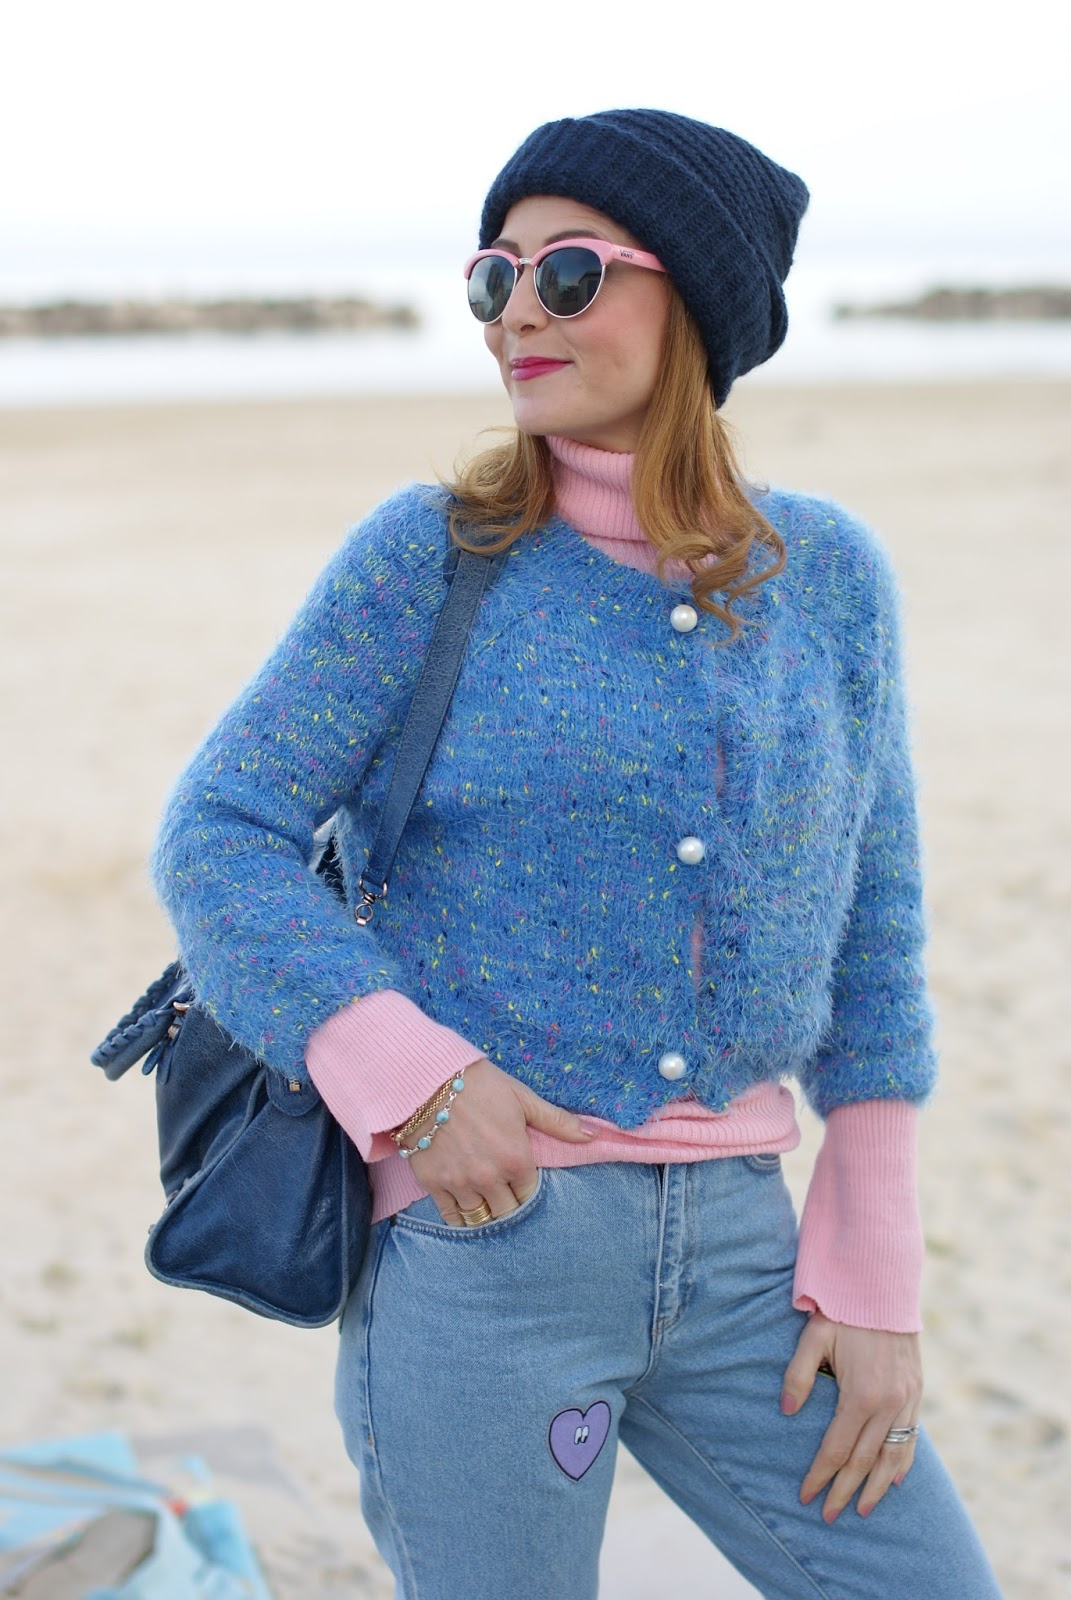 Mom patched jeans, pink turtleneck, Vans sunglasses on Fashion and Cookies fashion blog, fashion blogger style